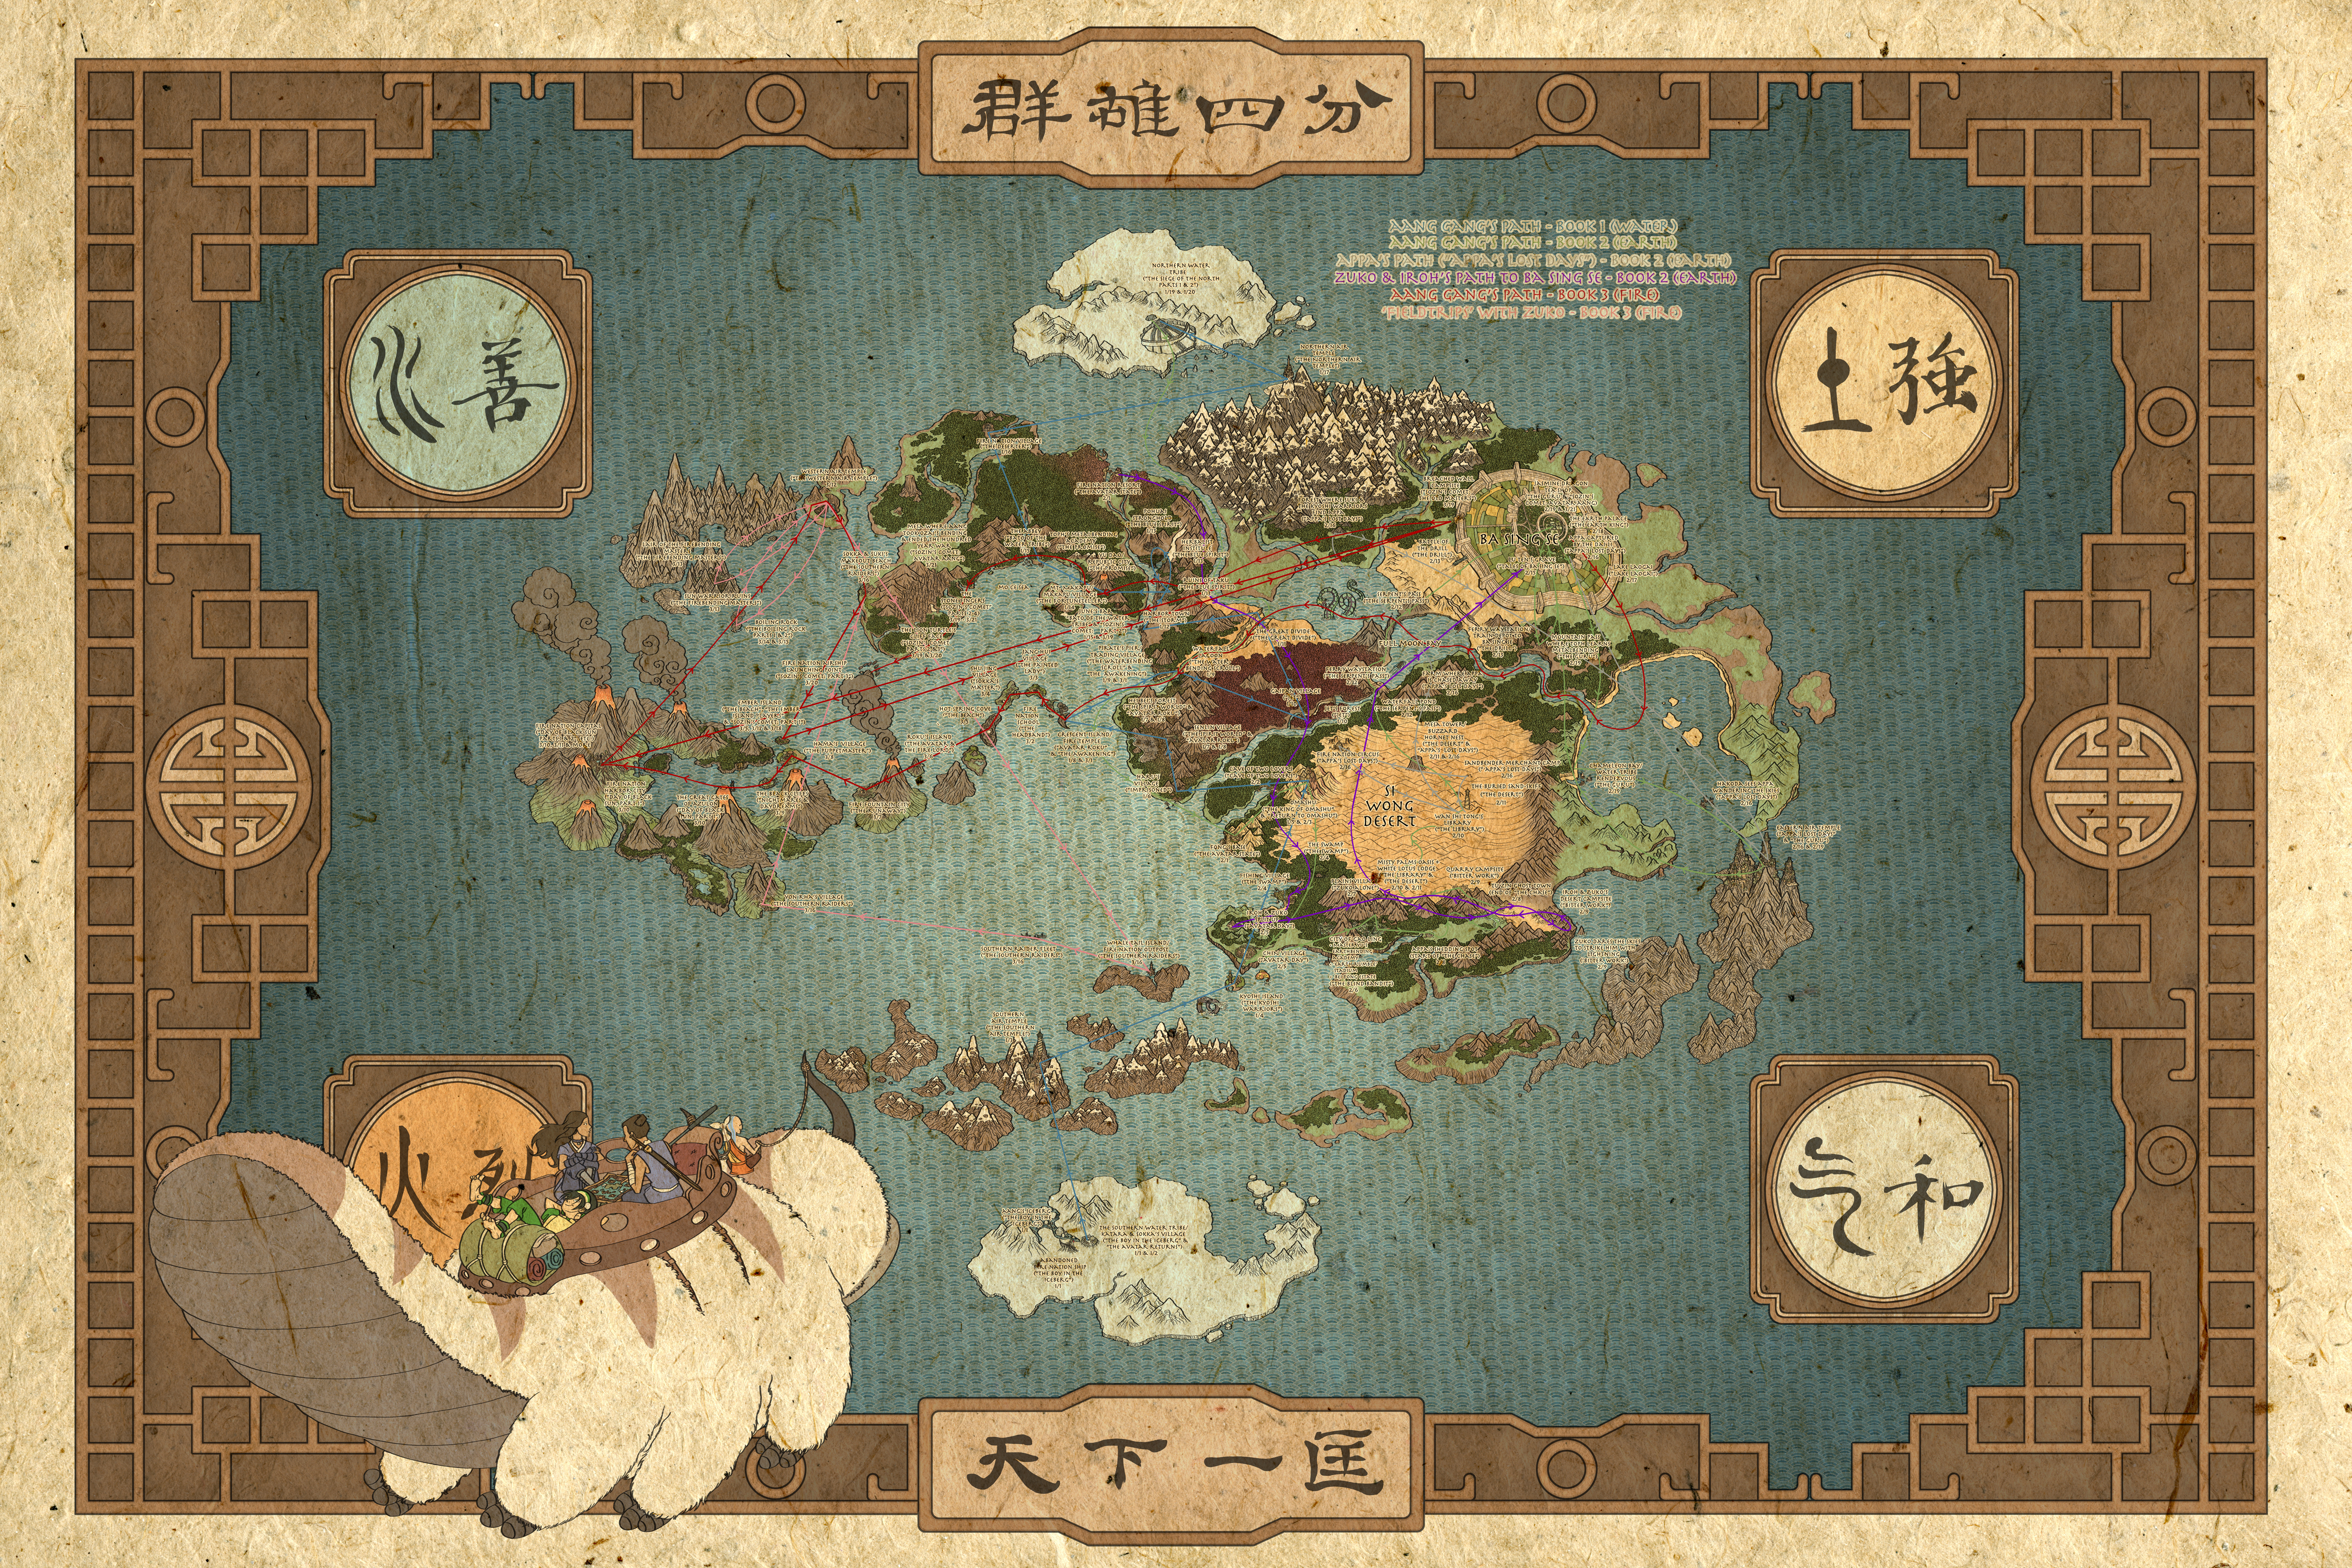 ATLA Highly Detailed Map Of The World Avatar